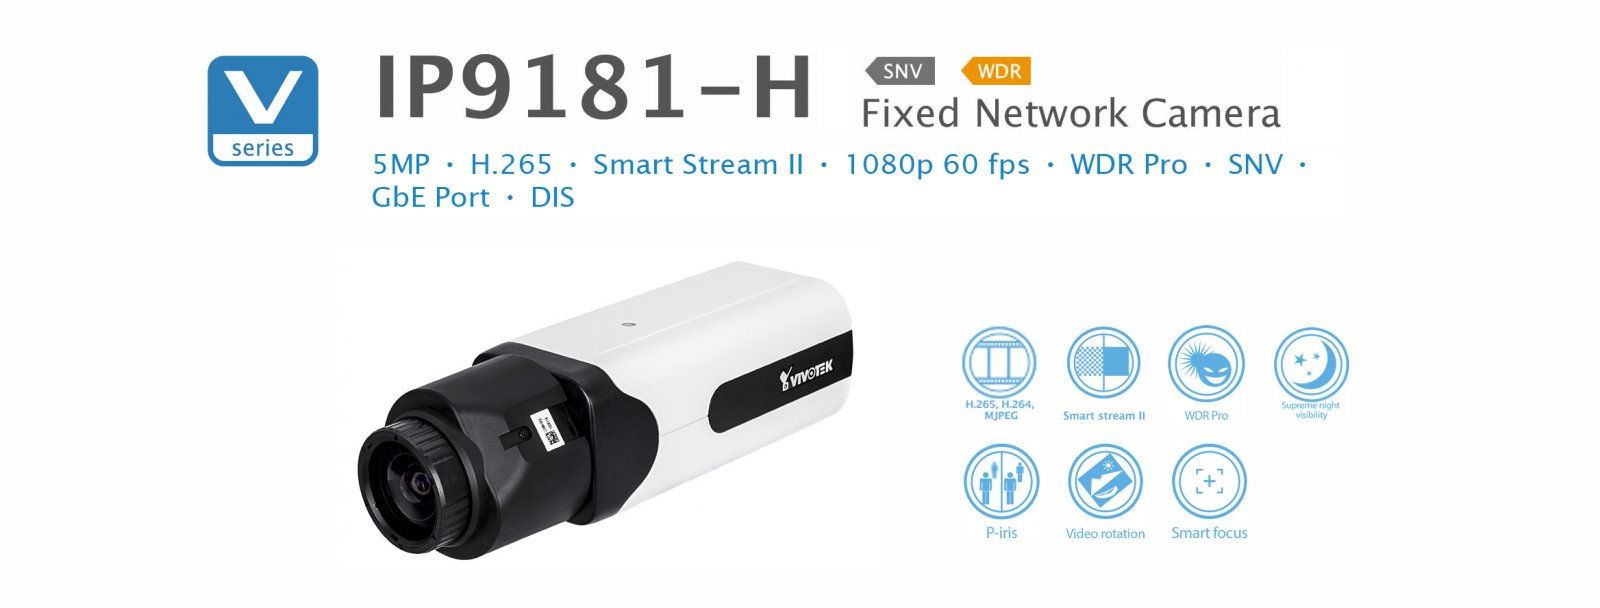 IP9181-H. Vivotek Fixed Network Camera